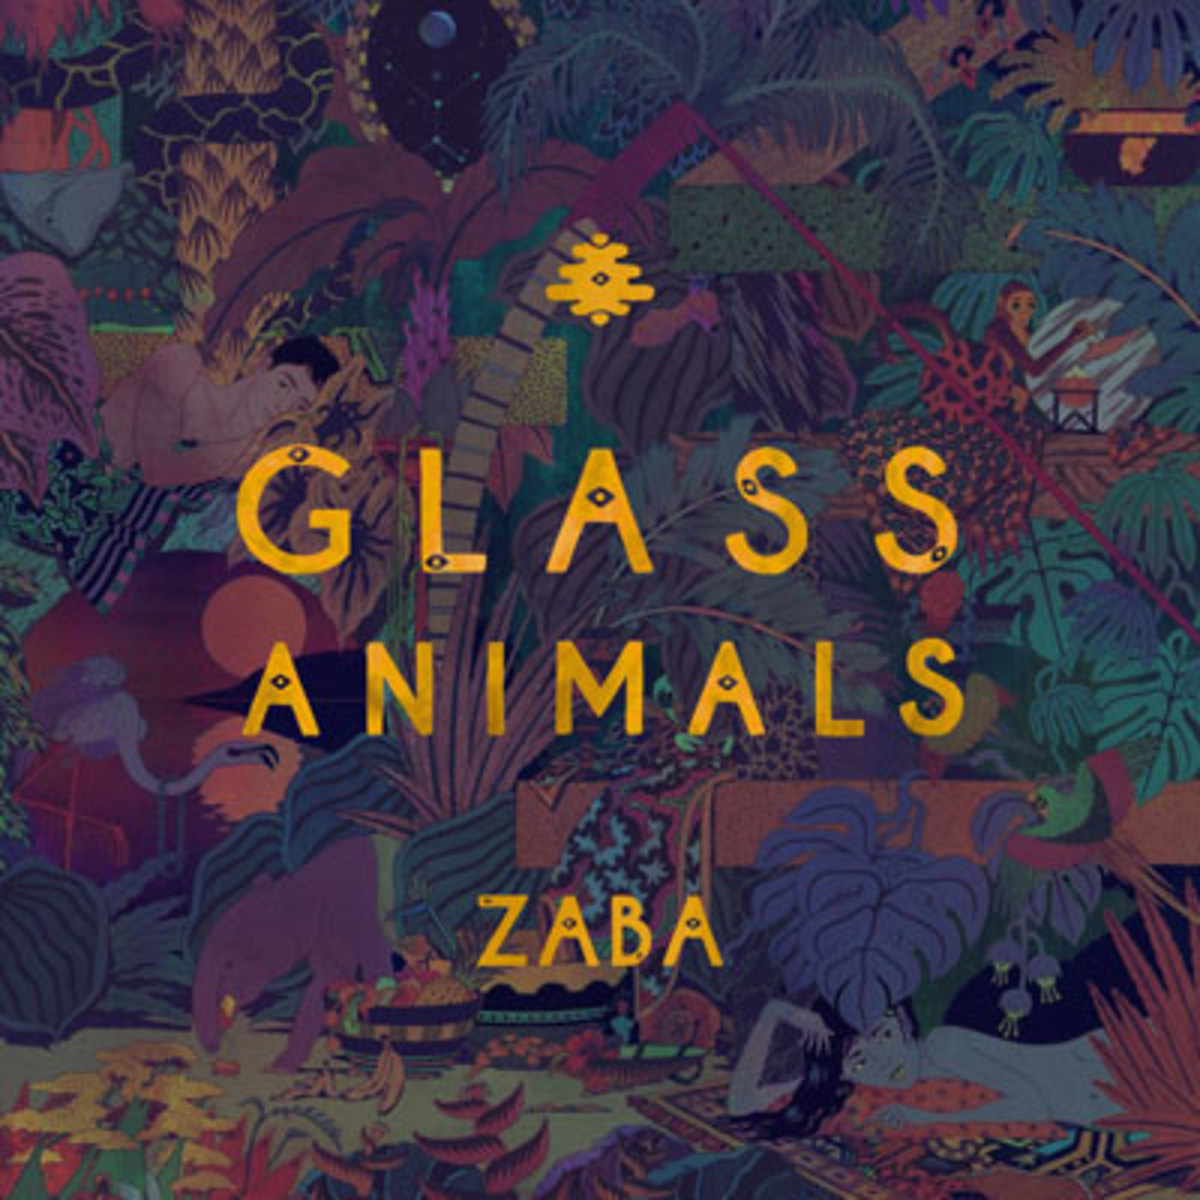 glassanimals-zaba.jpg